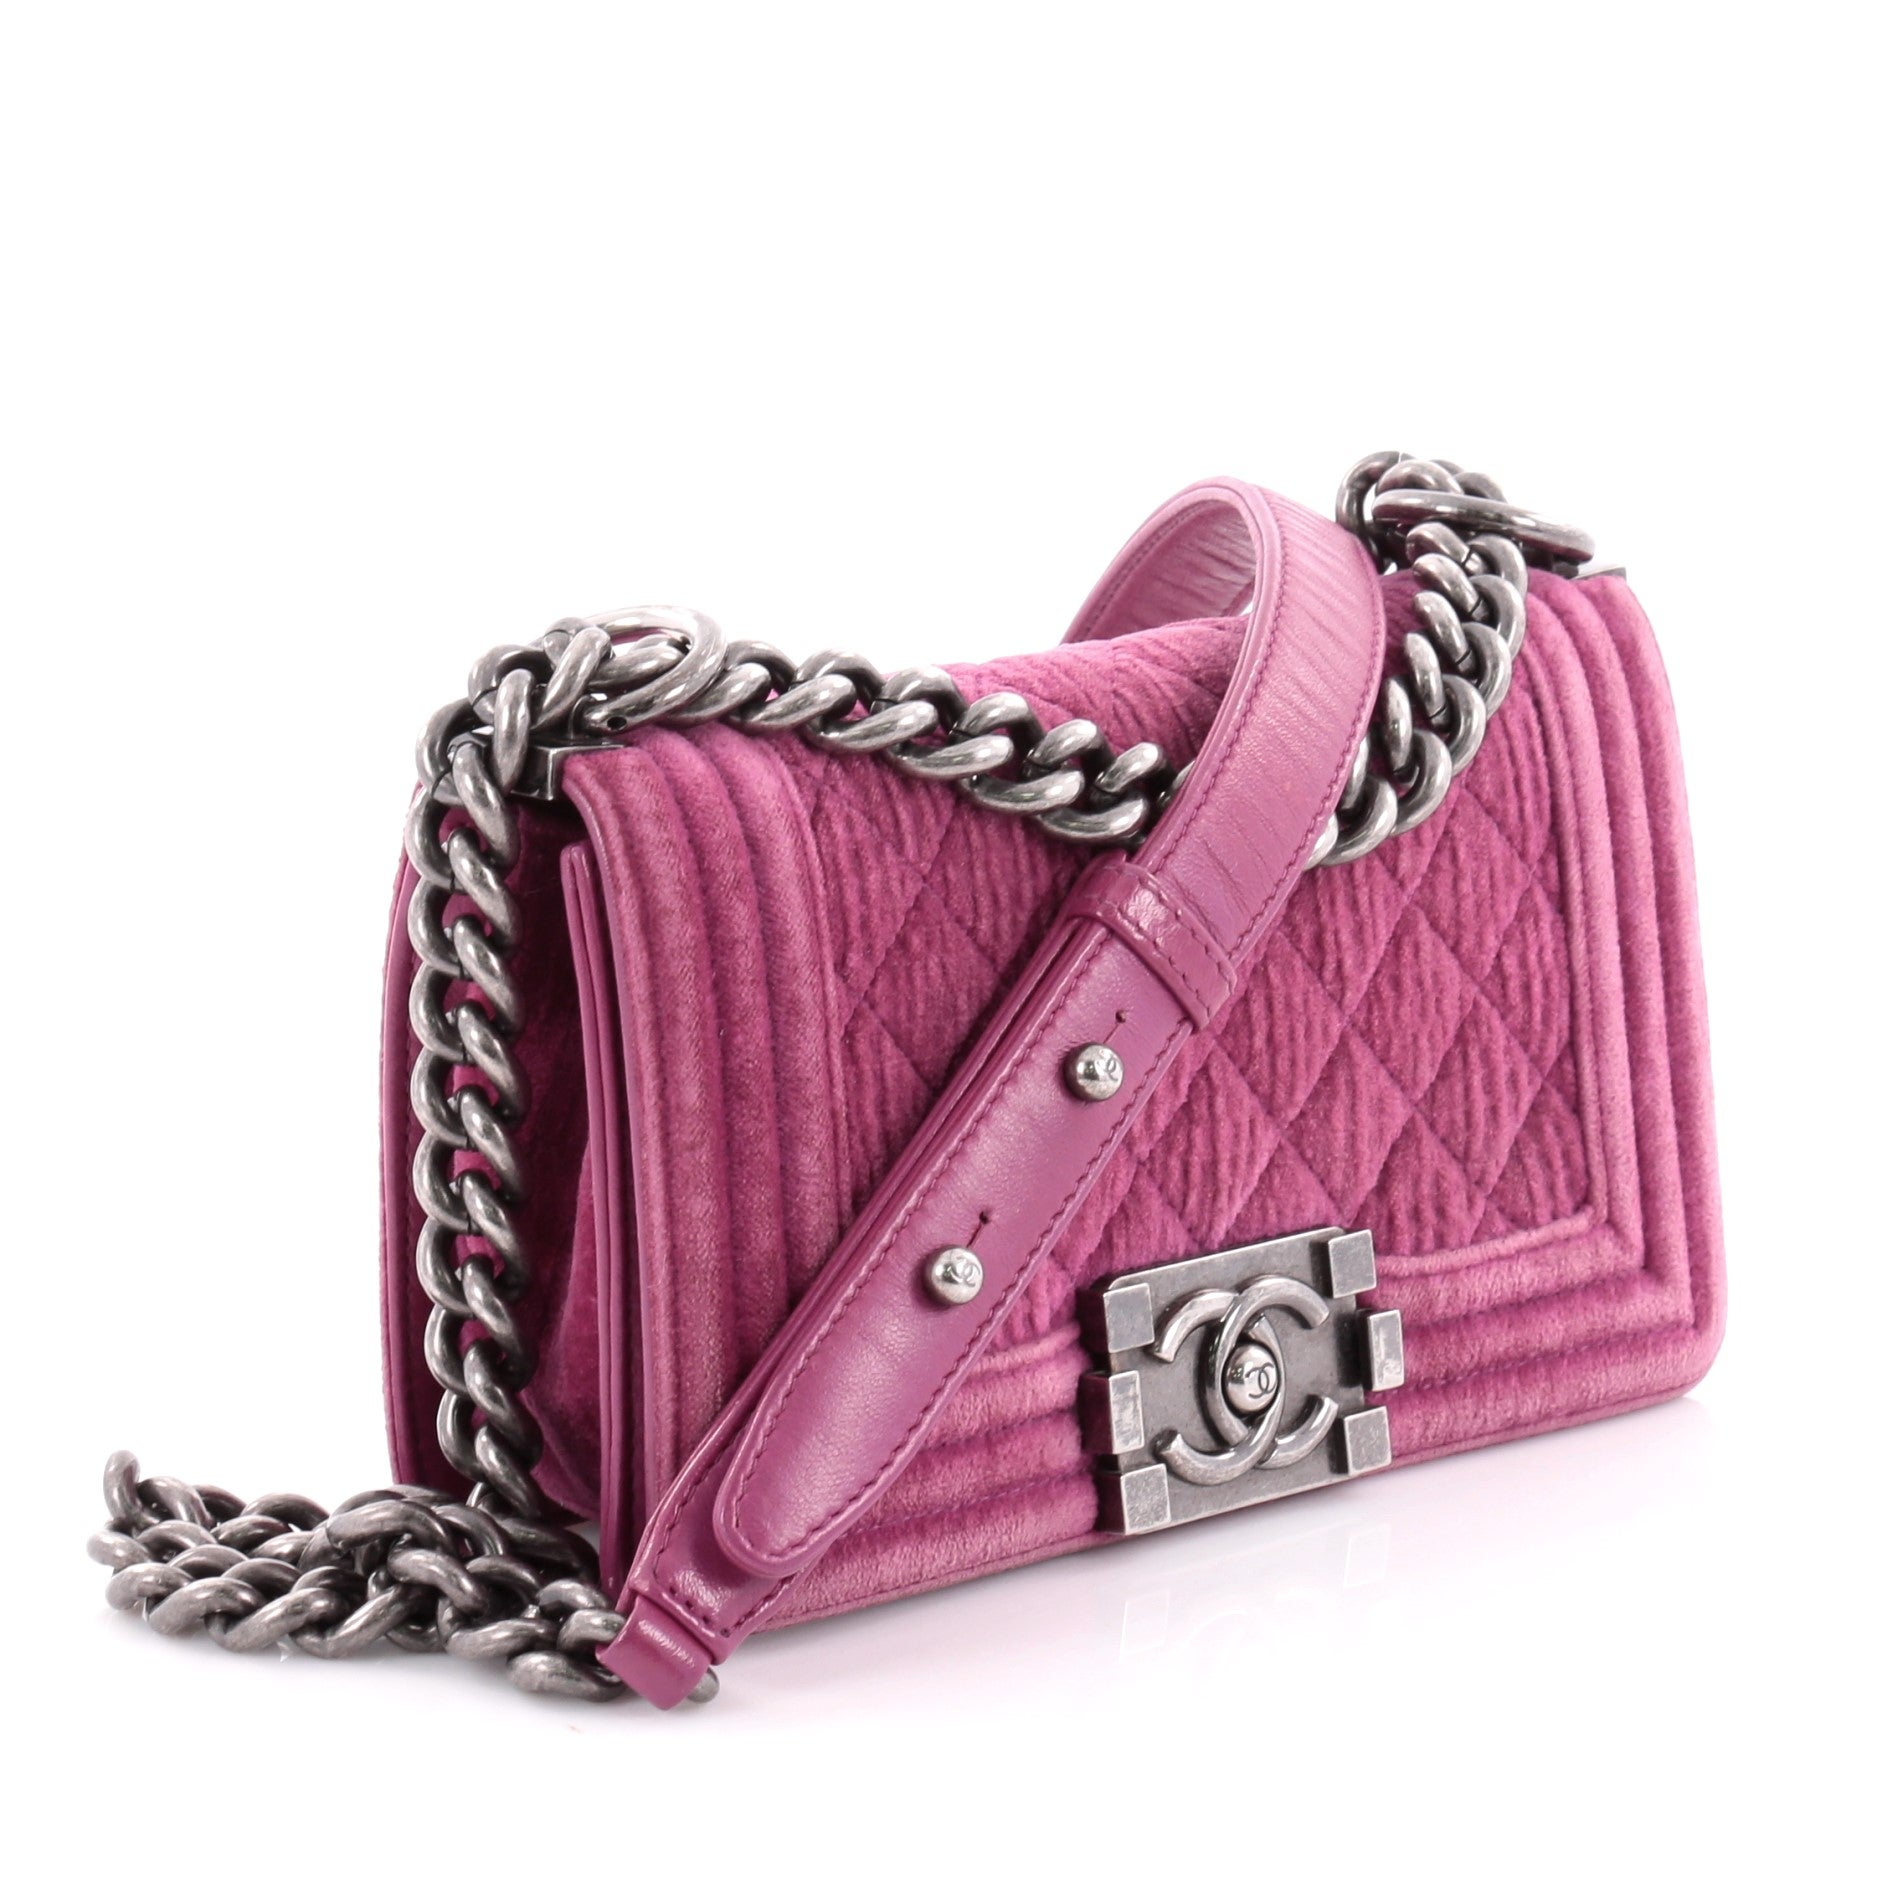 be14767fc793 Chanel Small Quilted Velvet Boy Flap Bag at 1stdibs